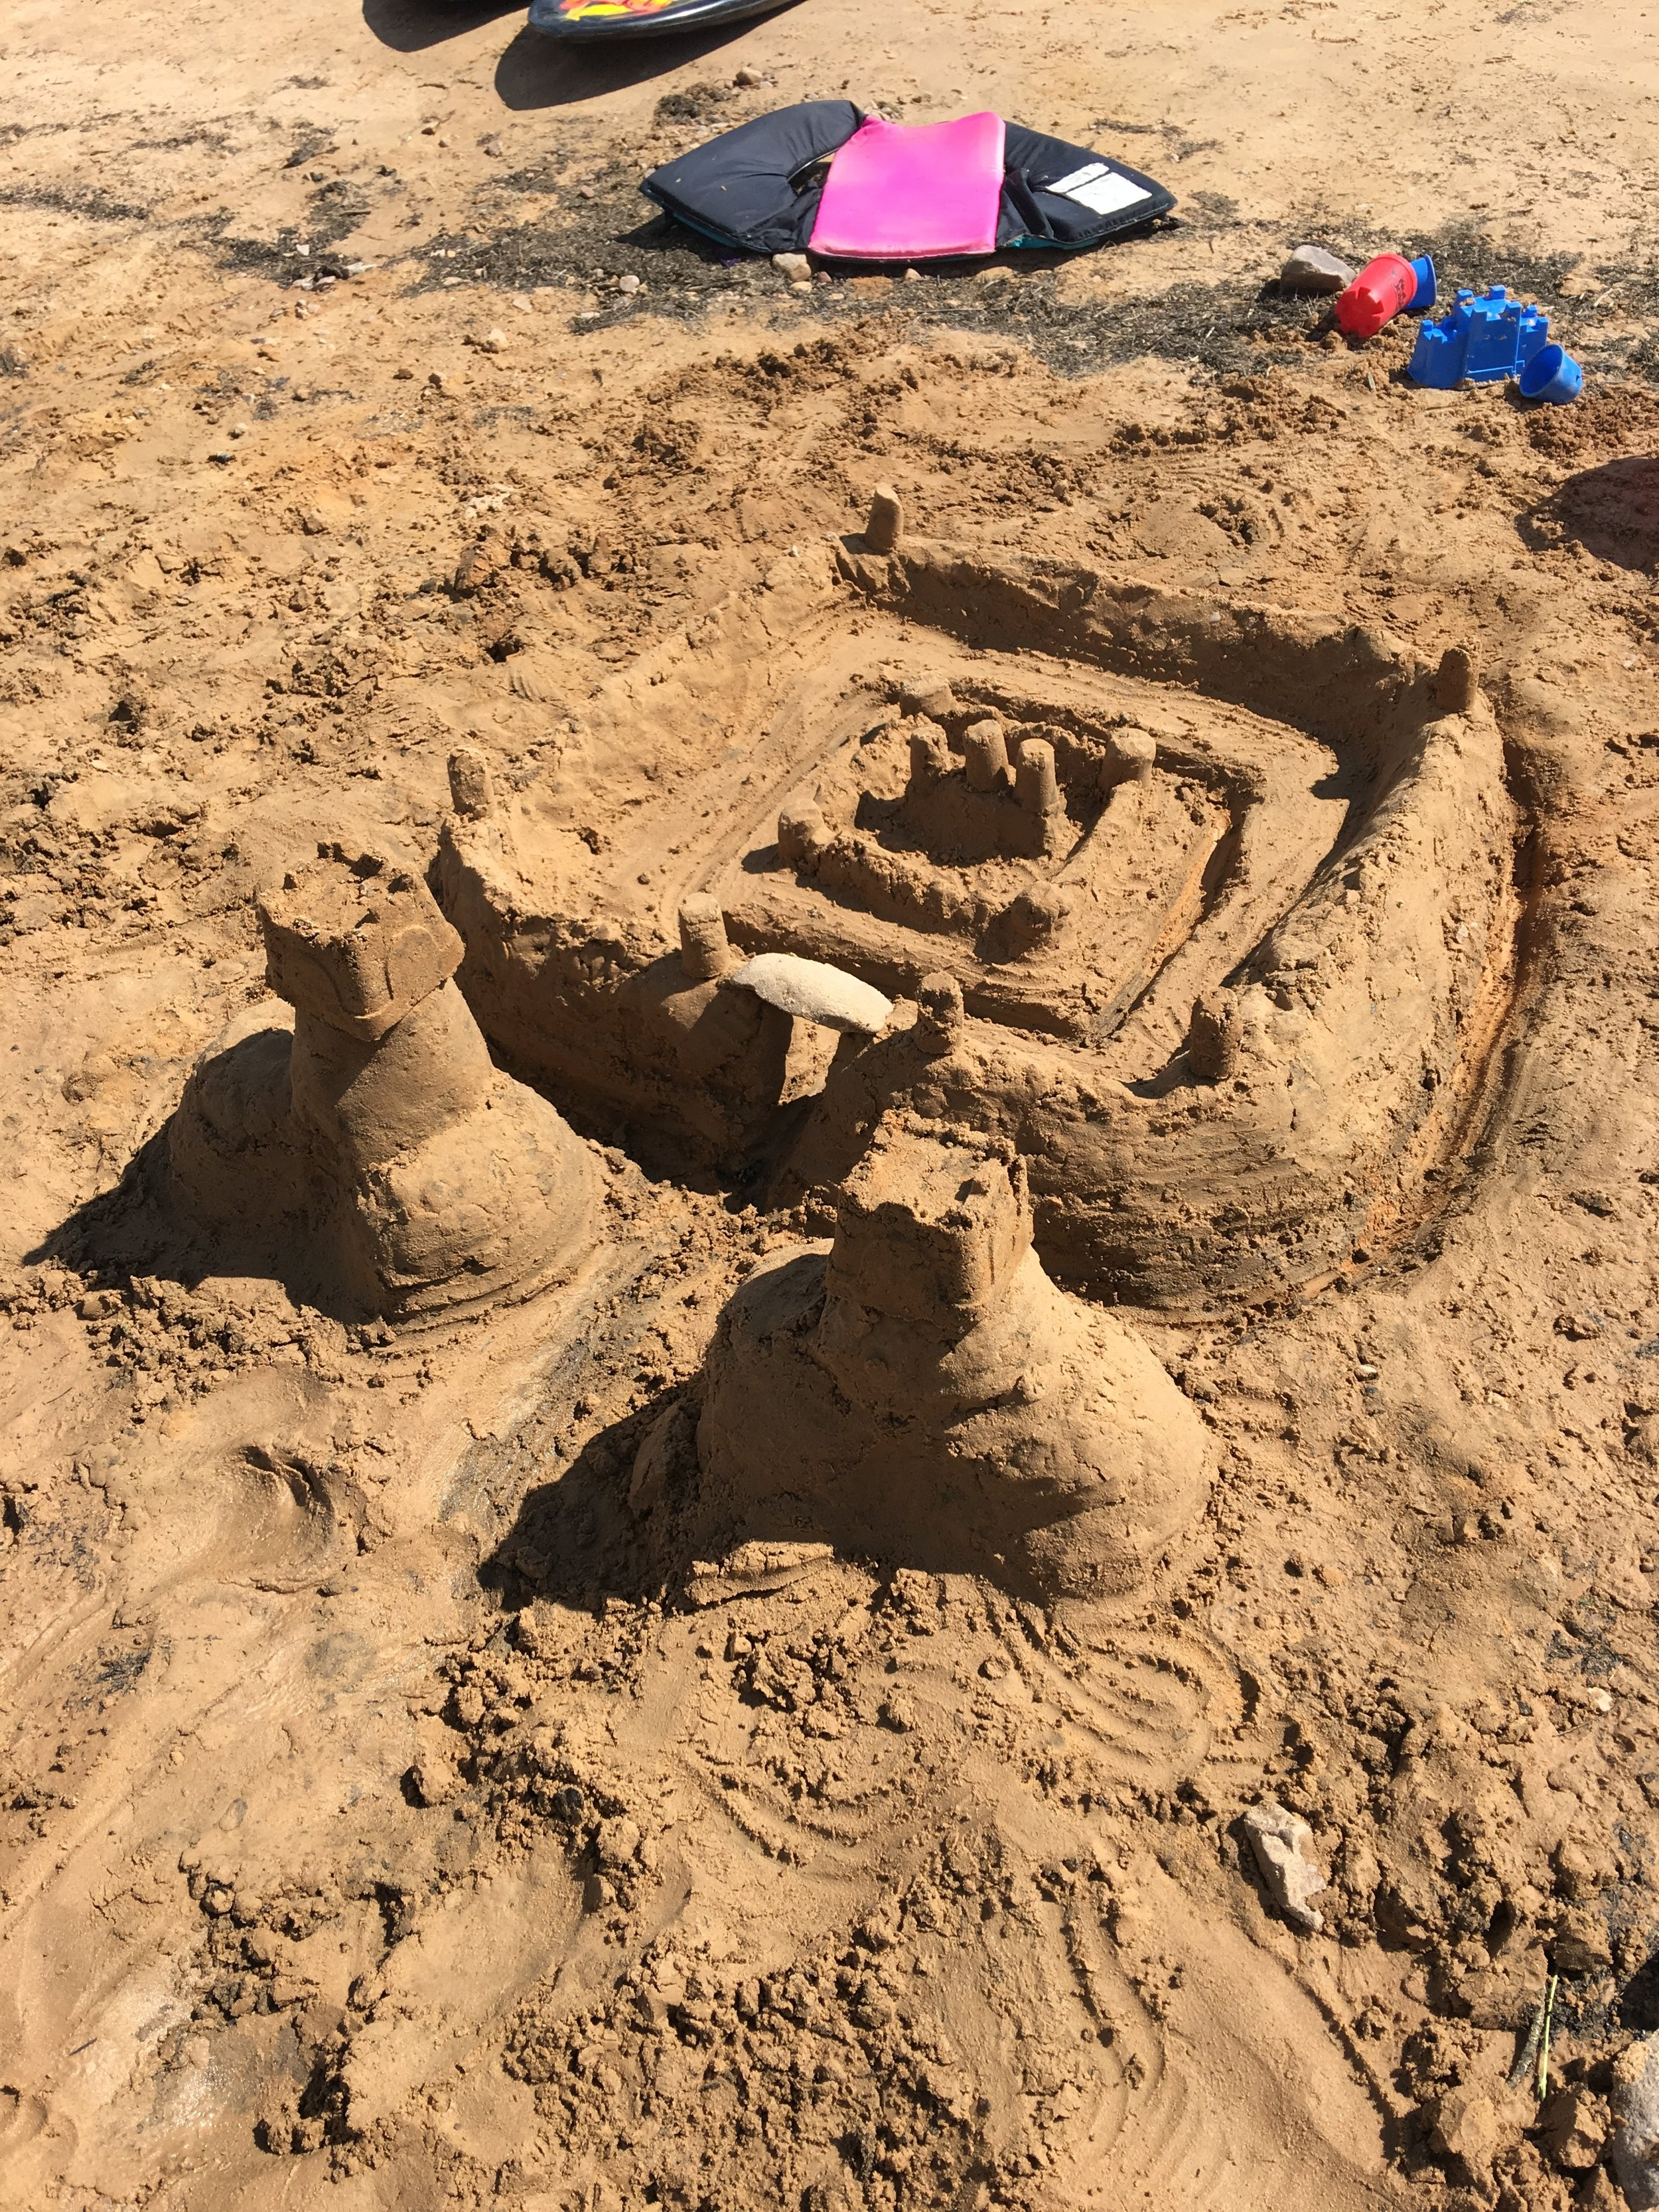 Kyler and I were quite proud of our large sand castle :)